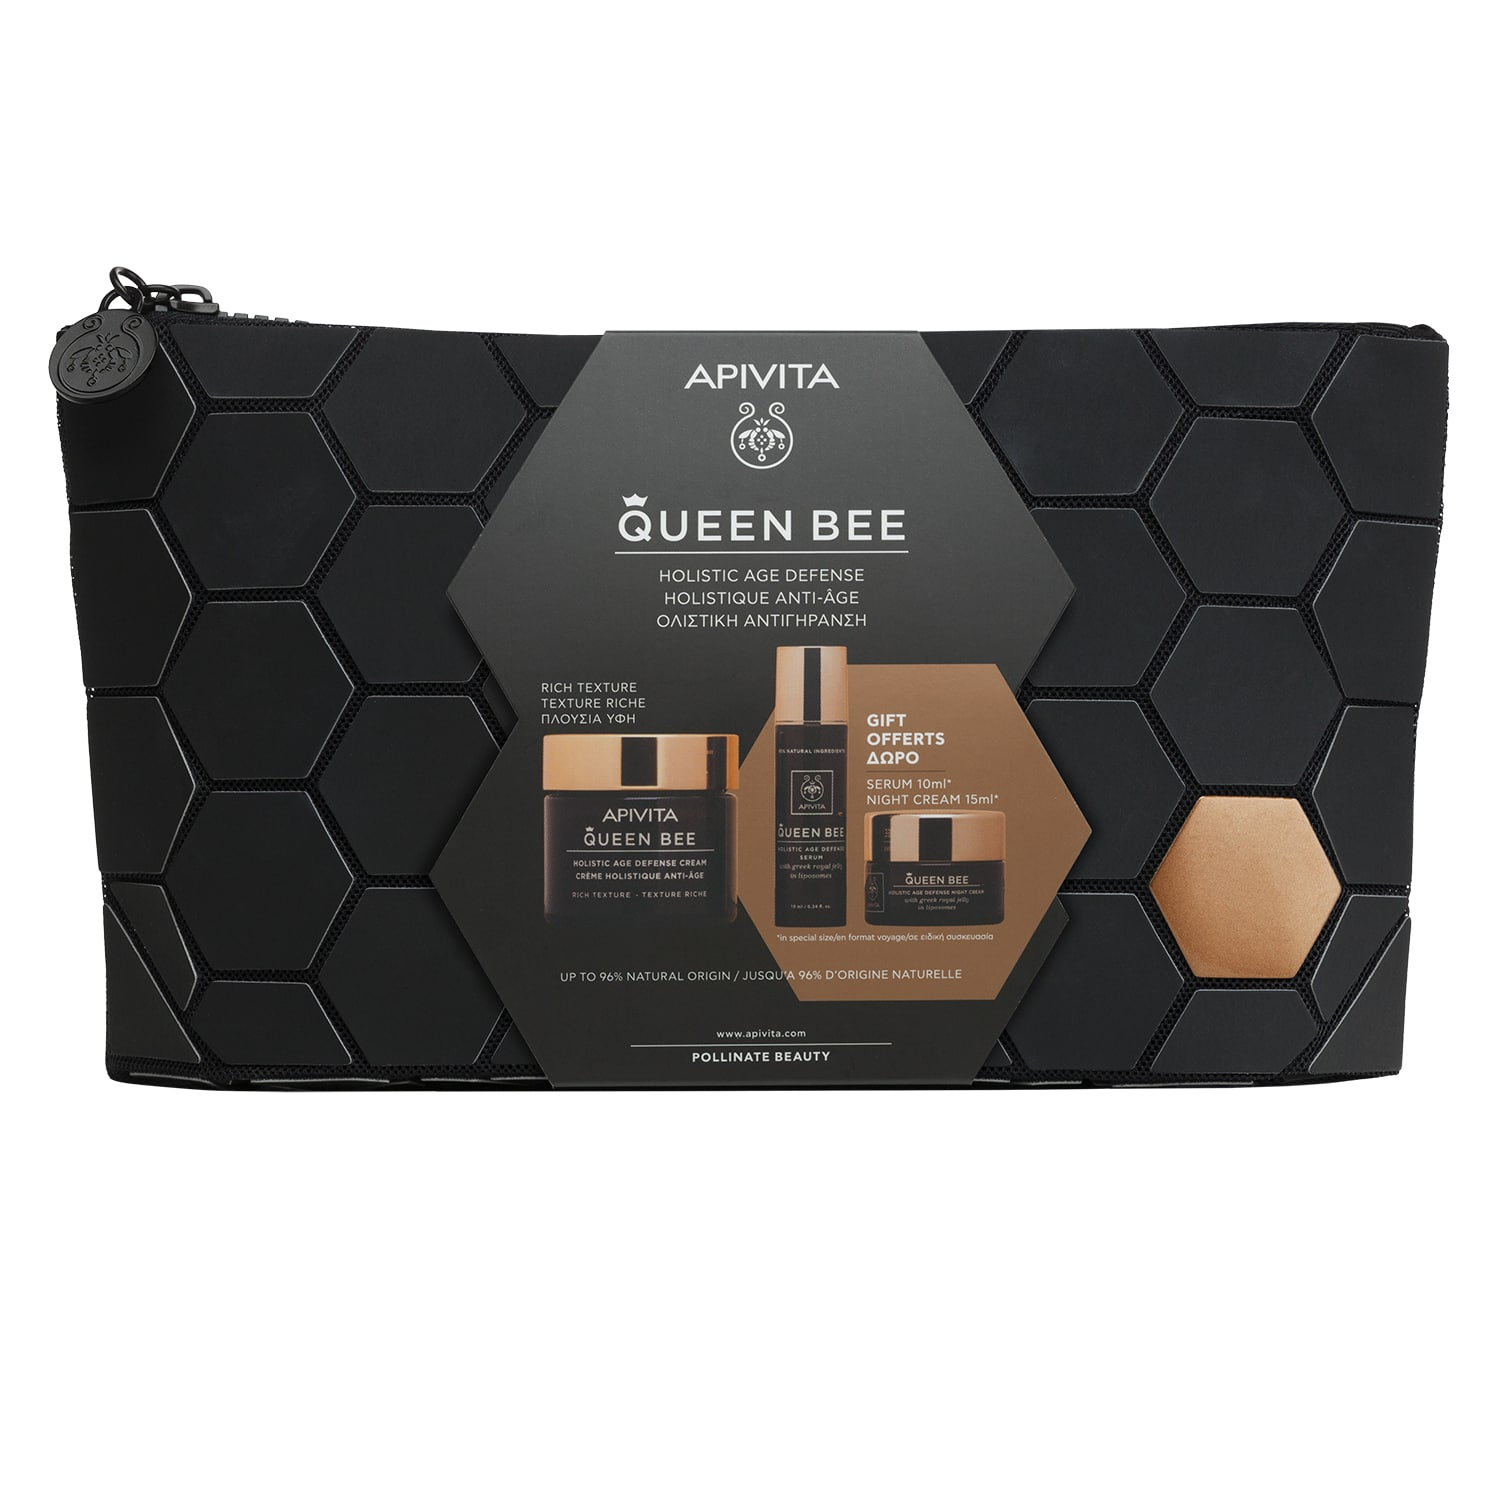 Apivita Promo Queen Bee Rich 50ml & Δώρο Queen Bee Serum Ορός 10ml & Δώρο Night Cream Κρέμα Νύχτας 15ml